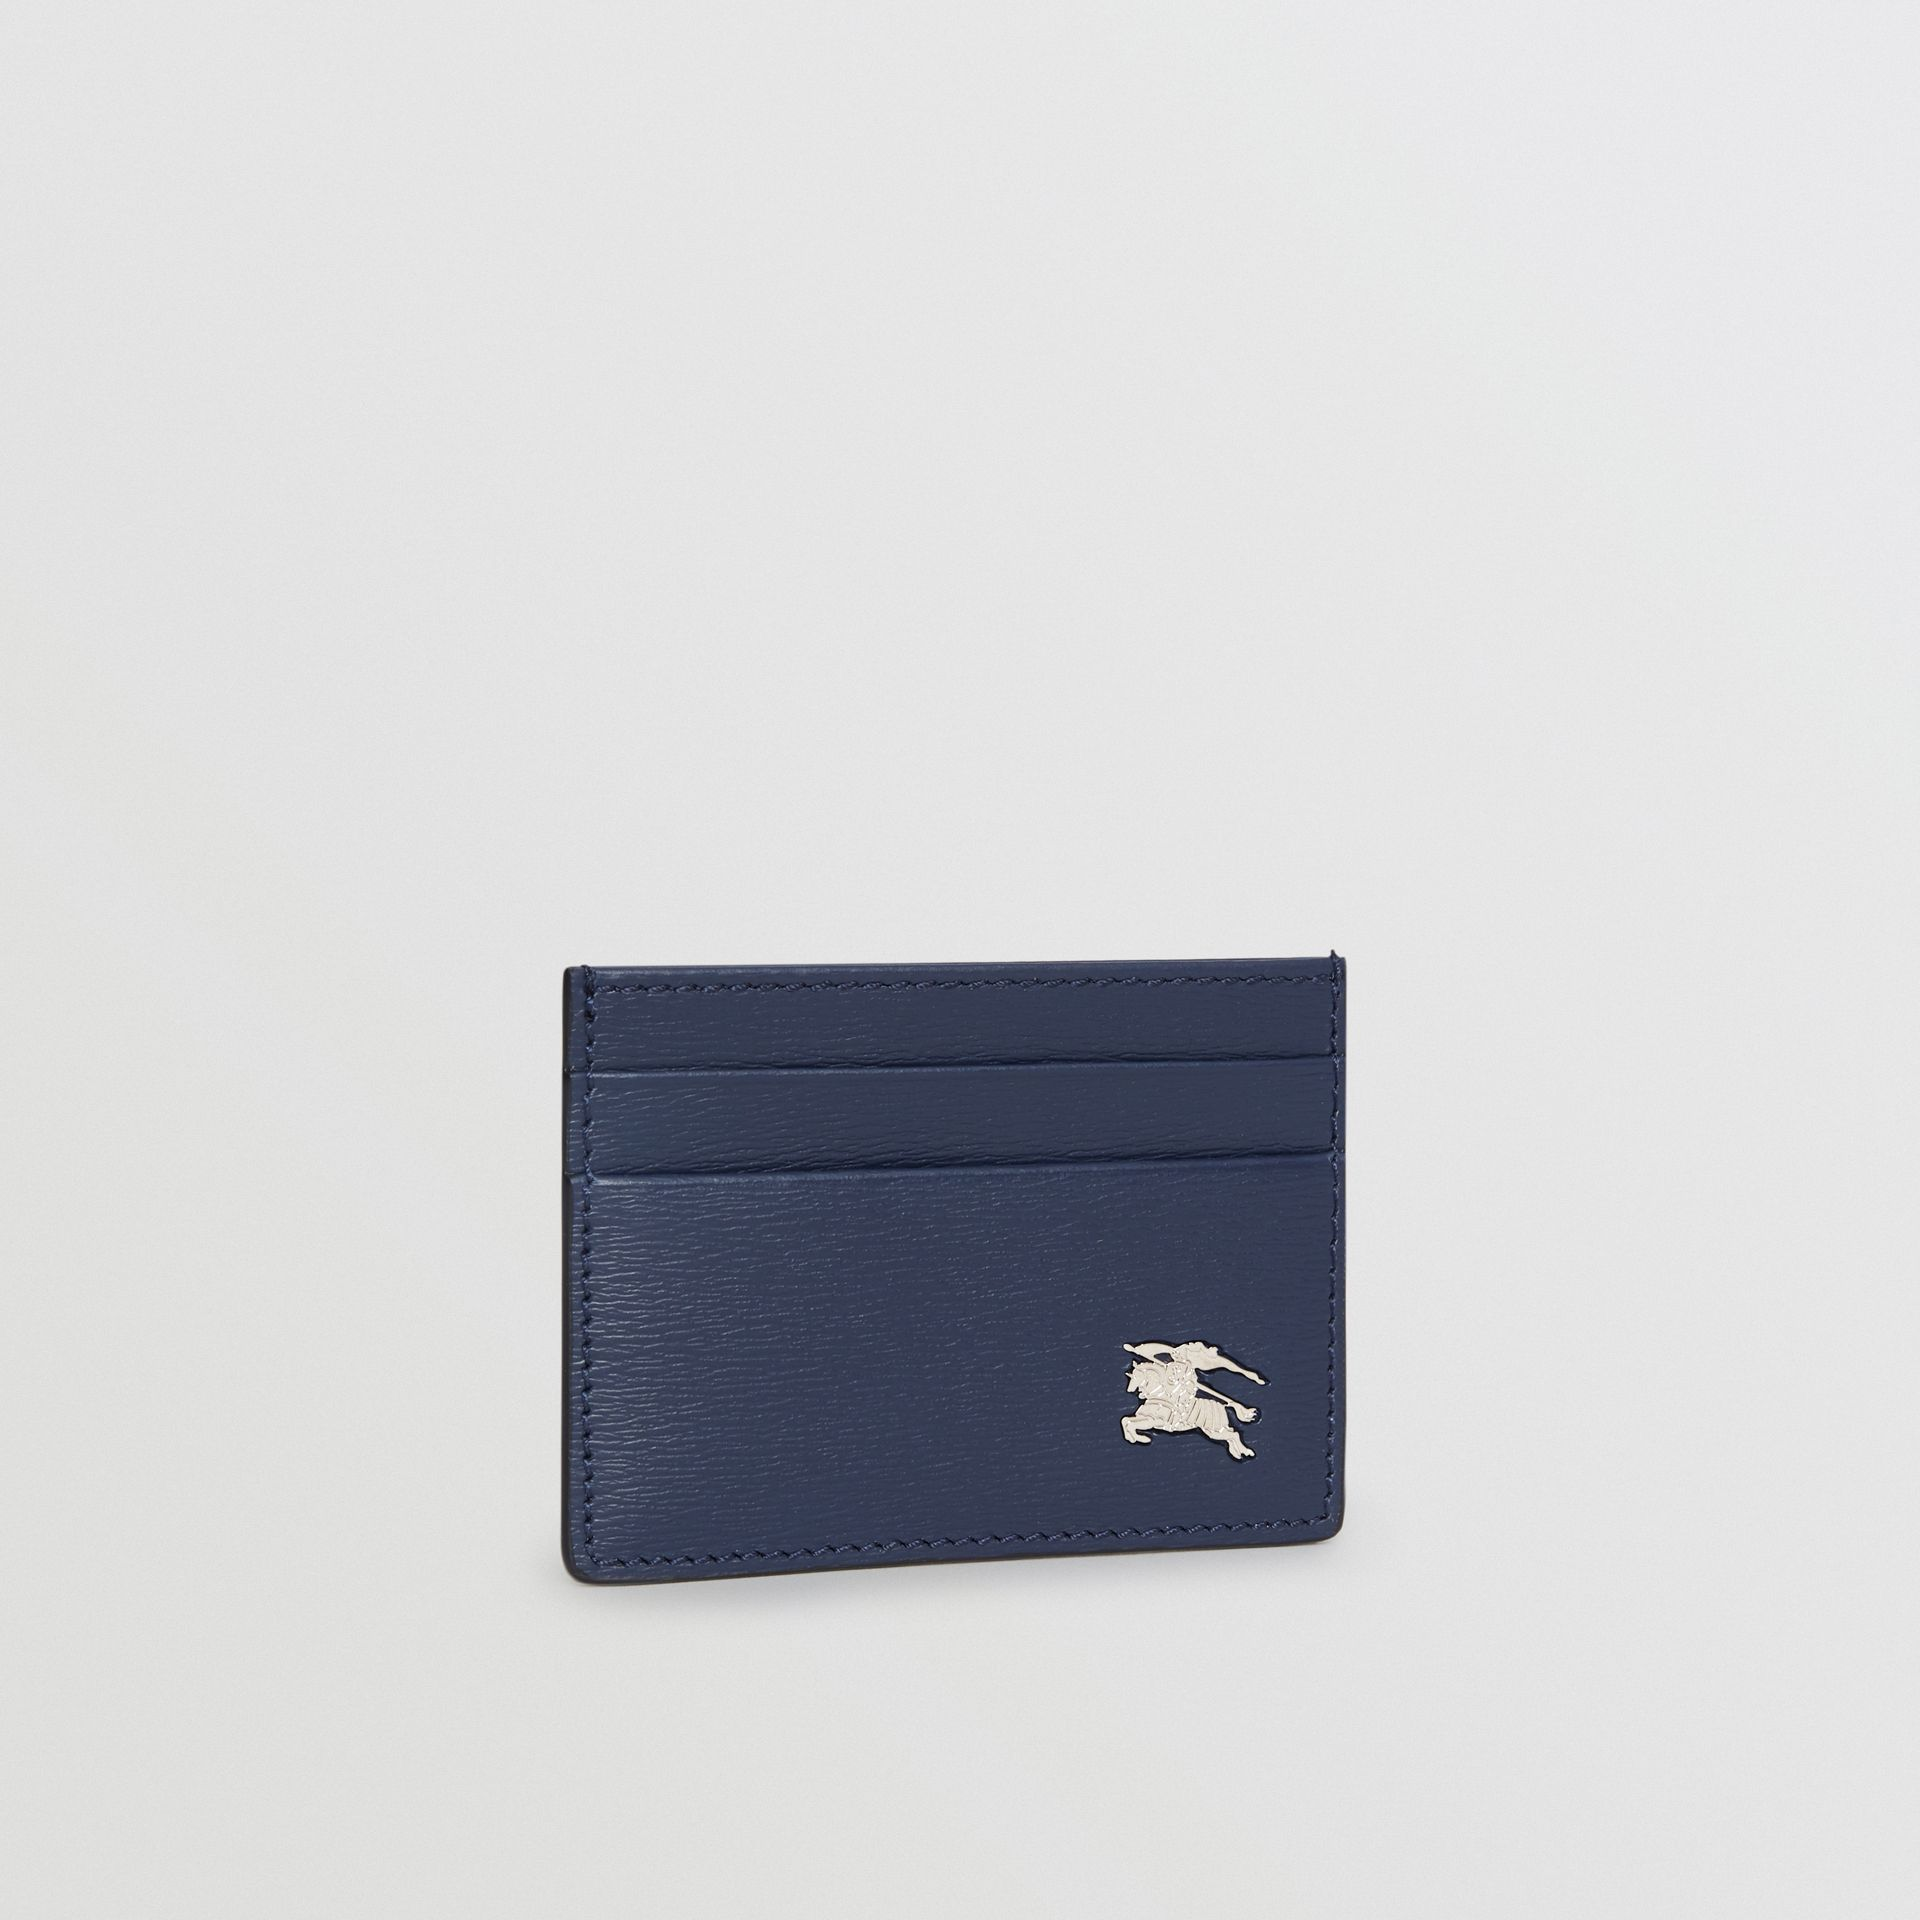 London Leather Card Case in Navy | Burberry - gallery image 3